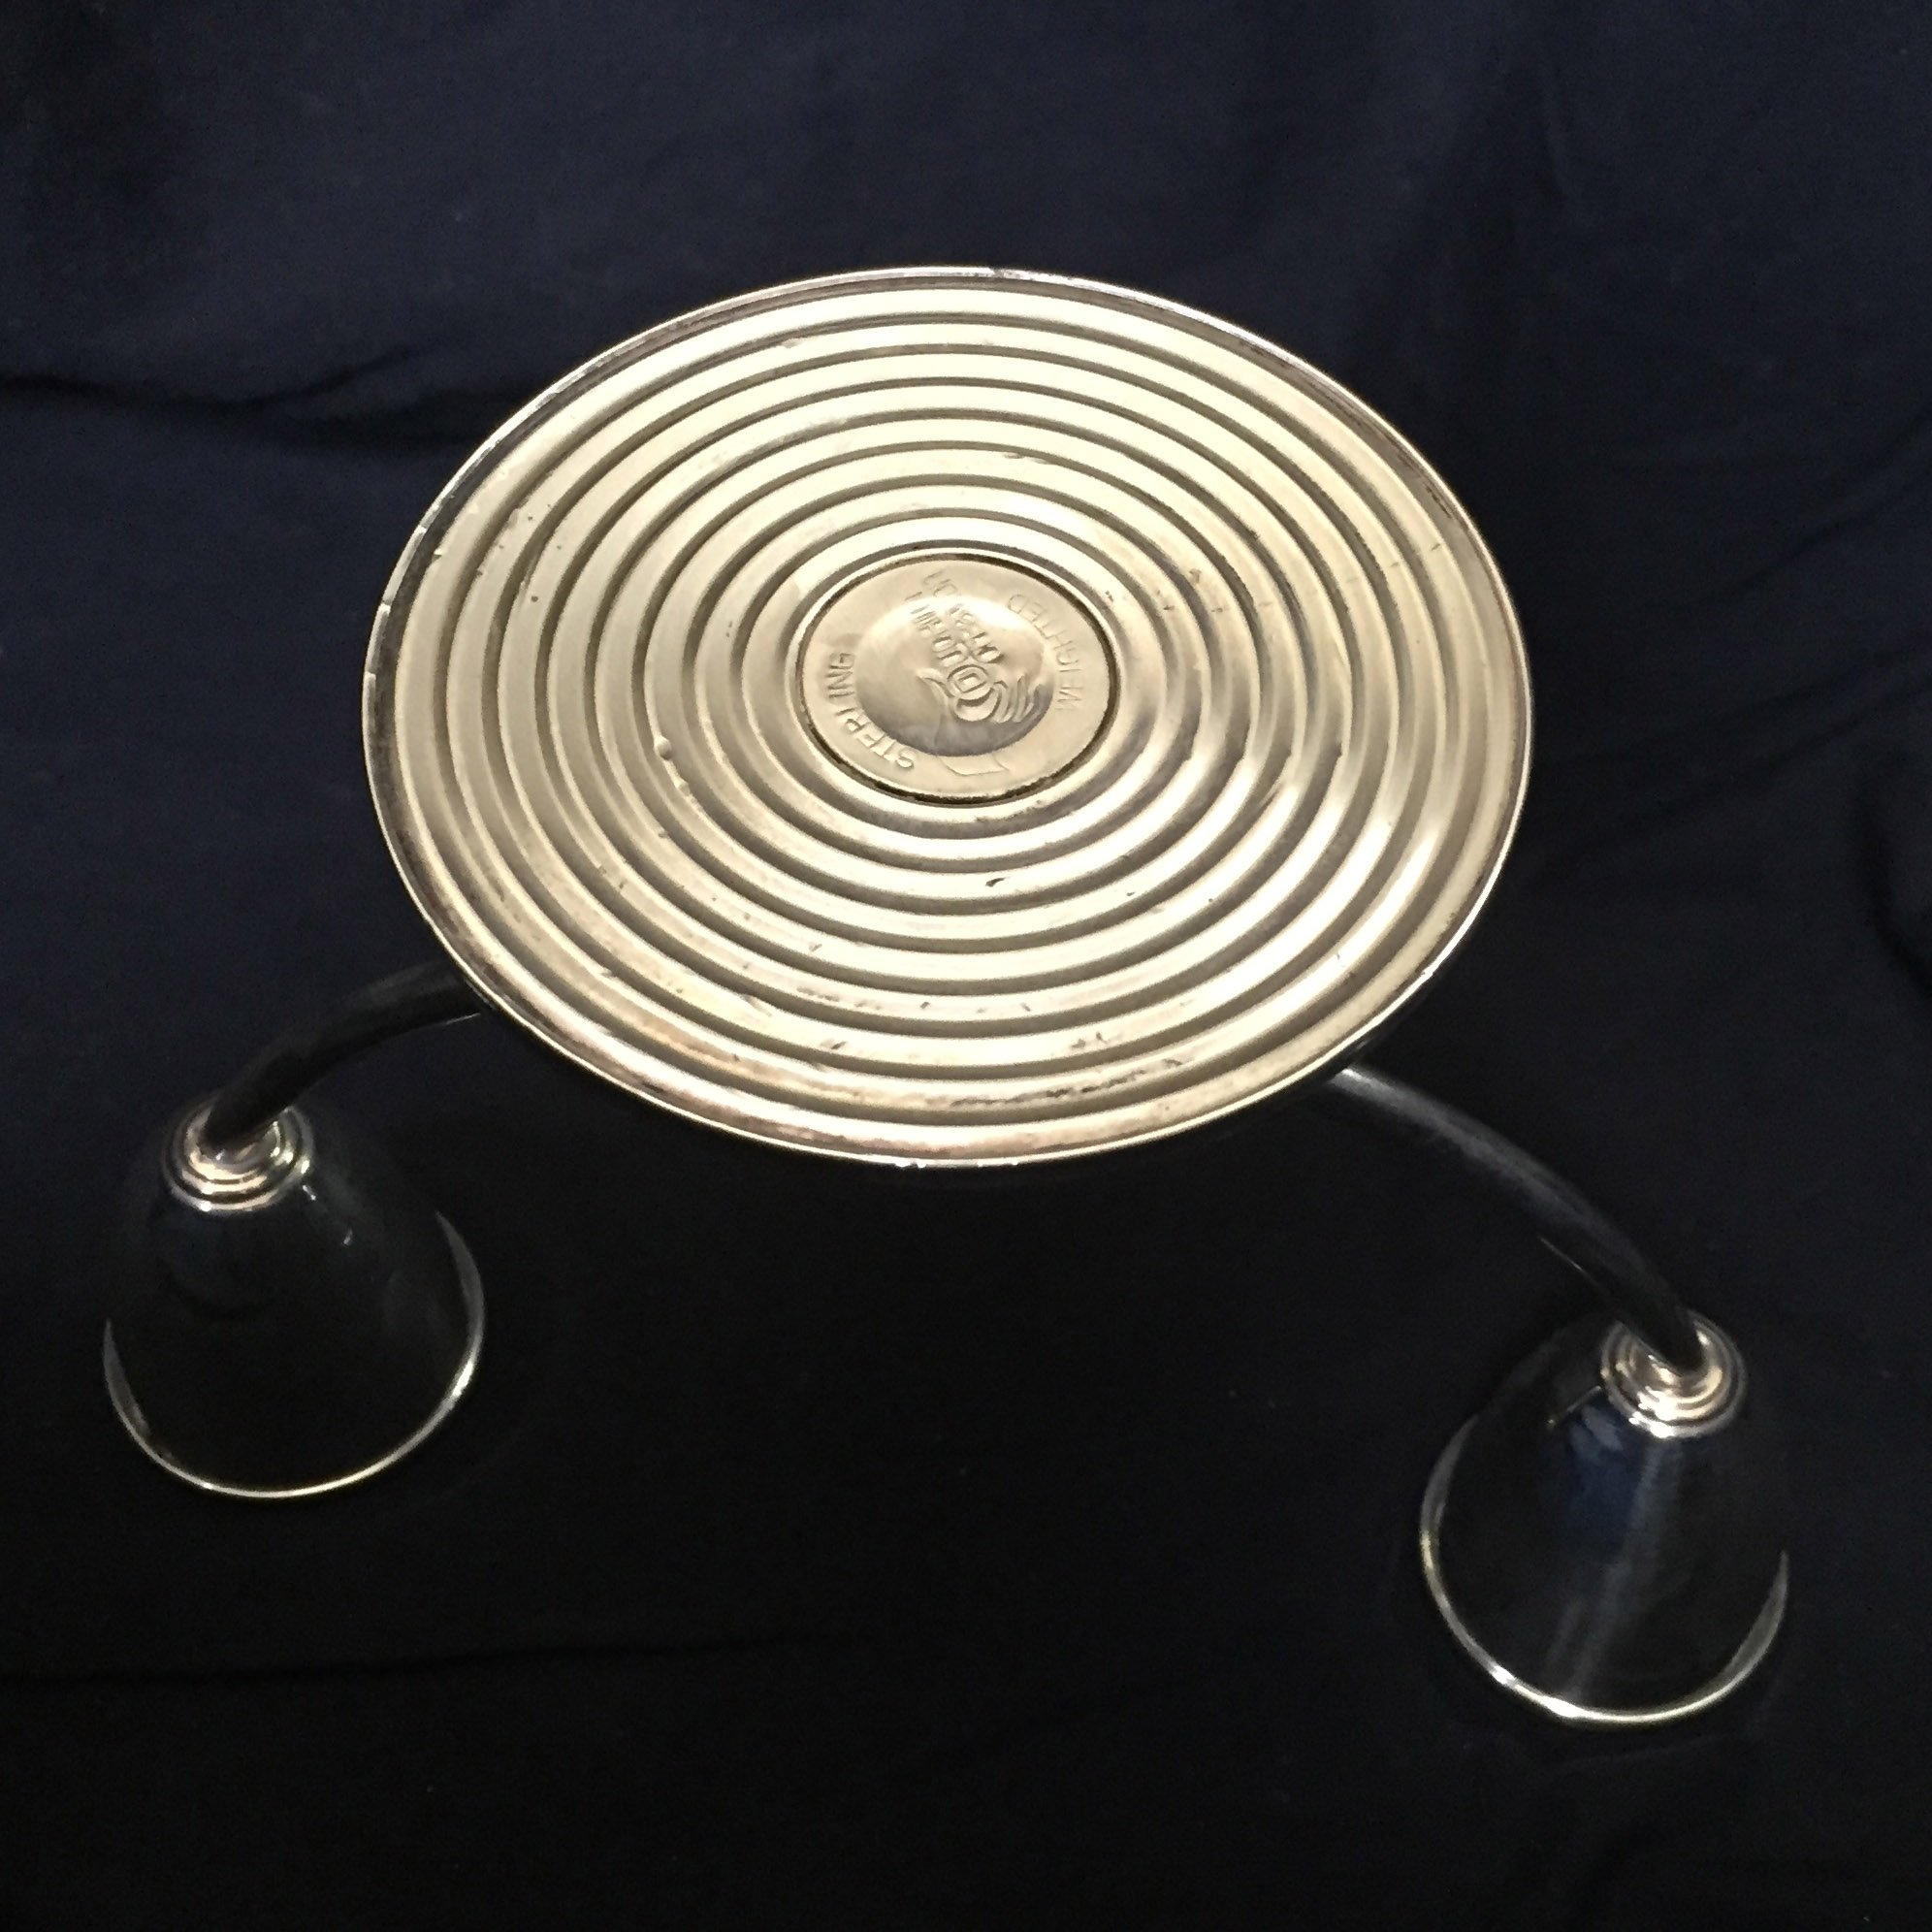 sterling silverware@selectioncoste.com